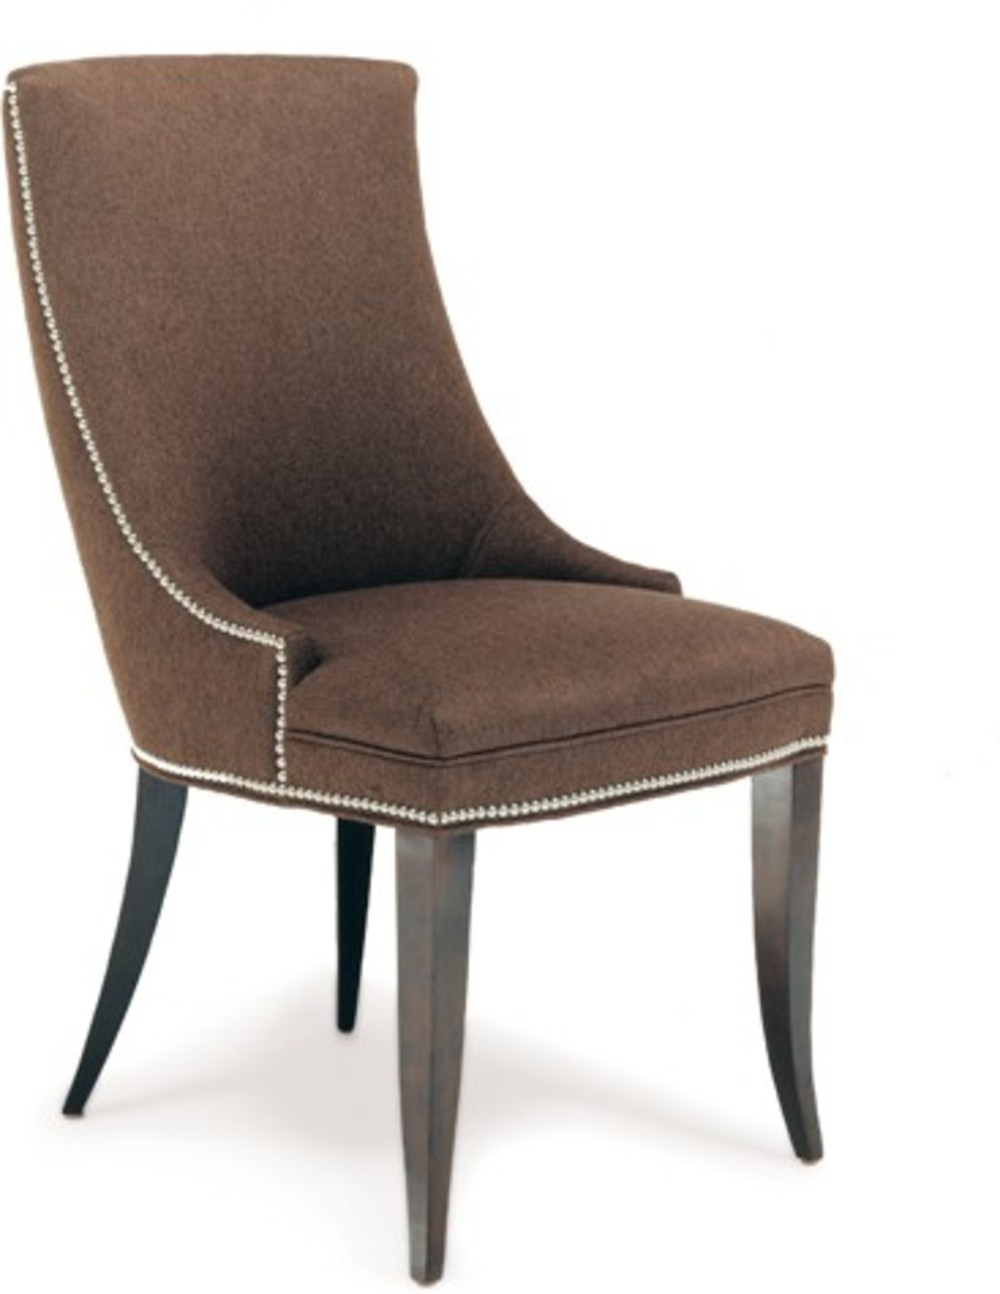 Precedent - Luc Dining Side Chair